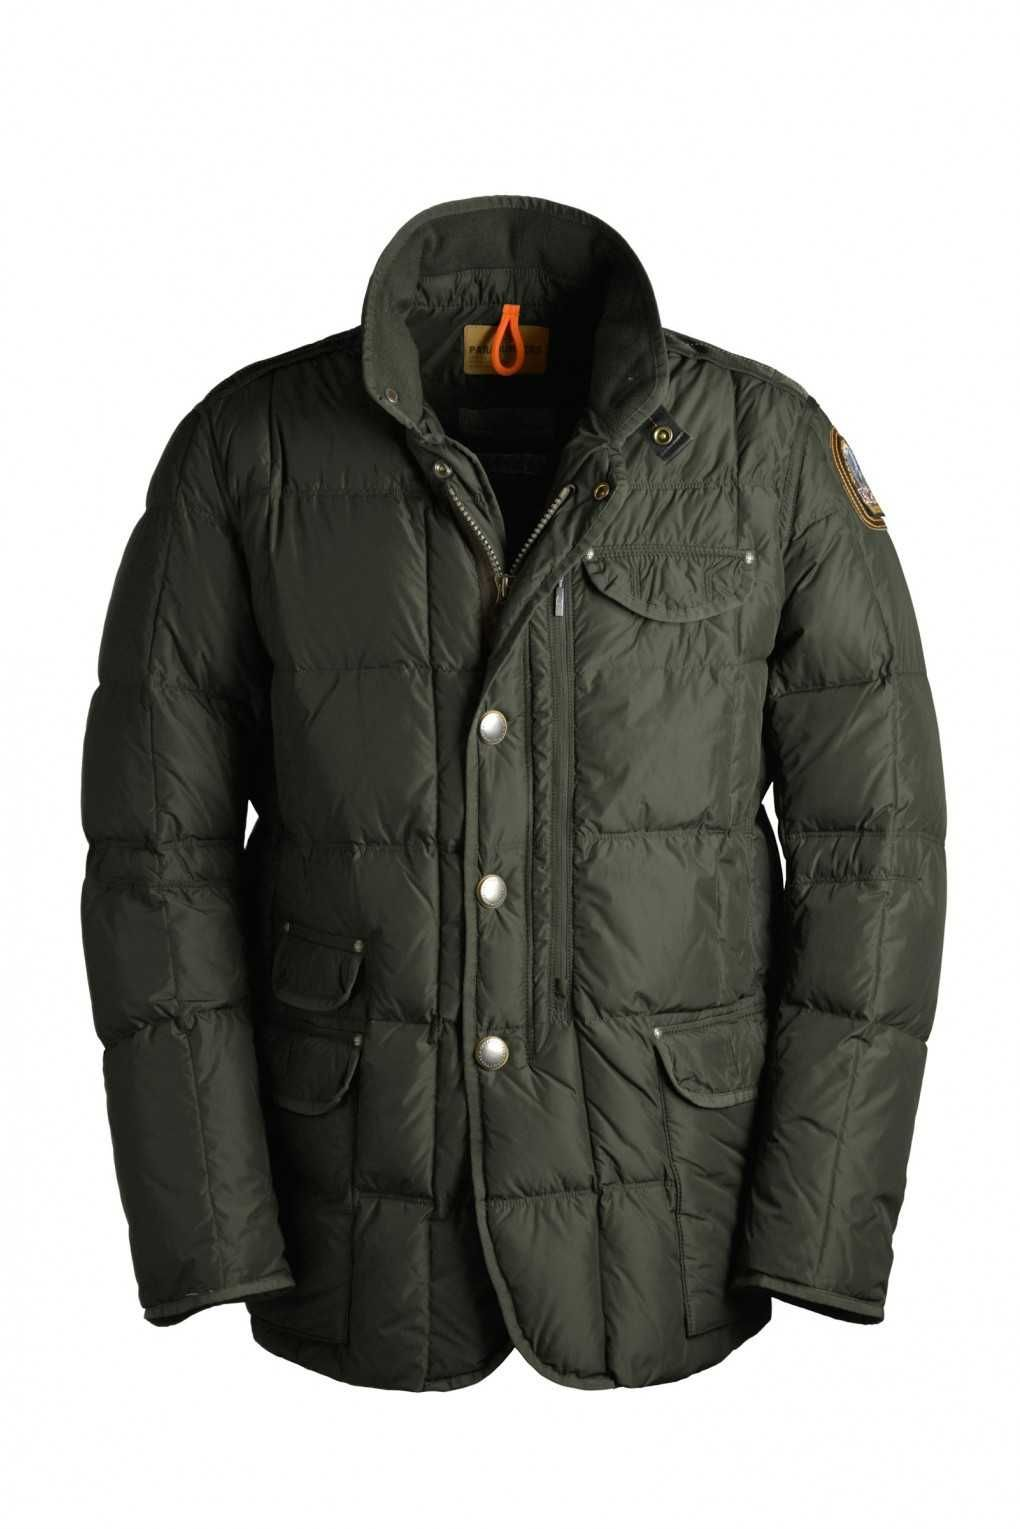 Parajumpers Womens Jackets Canada Factory Outlet,Big Discount From Original Women's Parajumper Sale UK!